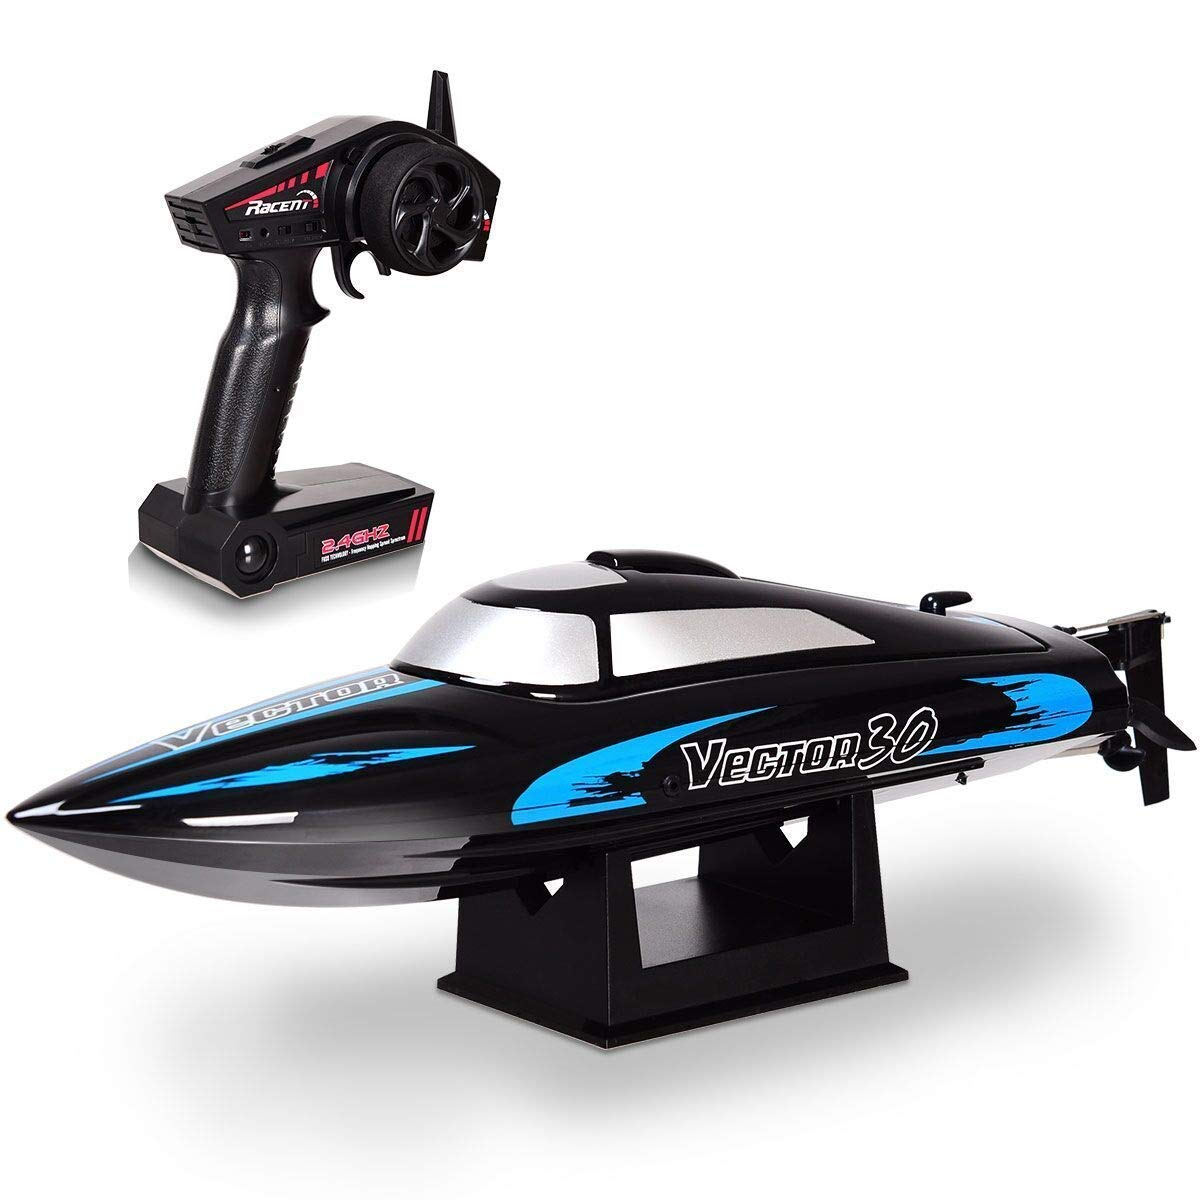 HAPPYGRILL RC Boat Remote Control Boat, Vector30 2.4G RC High Speed Racing Boat for Kids or Adults, Self-righting Auto Roll Back, Reverse Function, Brushed Motor, RTR, Black